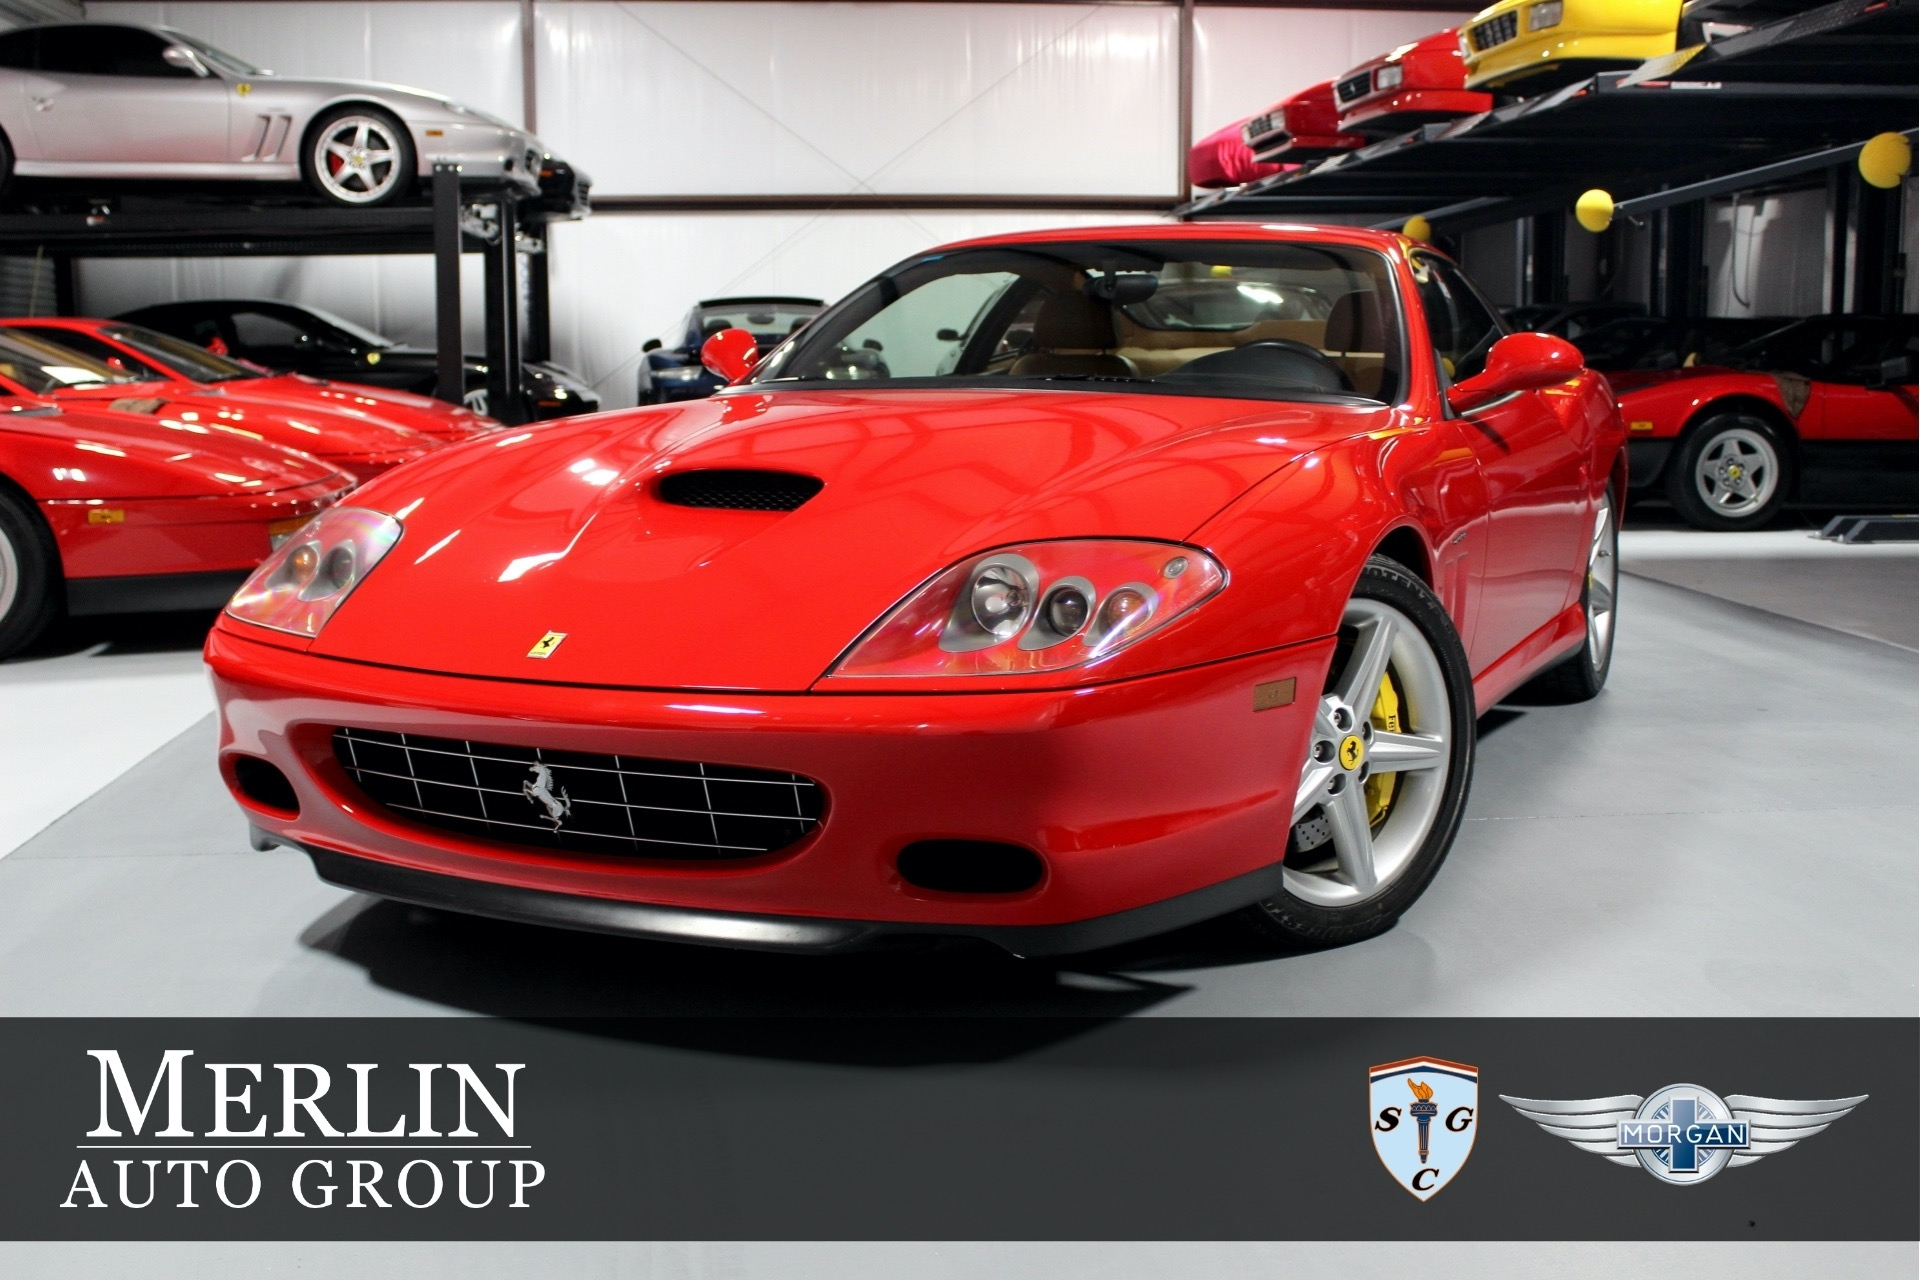 concours bringing lease tifosi bash deals by ferrari to culture lm d at in features maranello elegance the car birthday